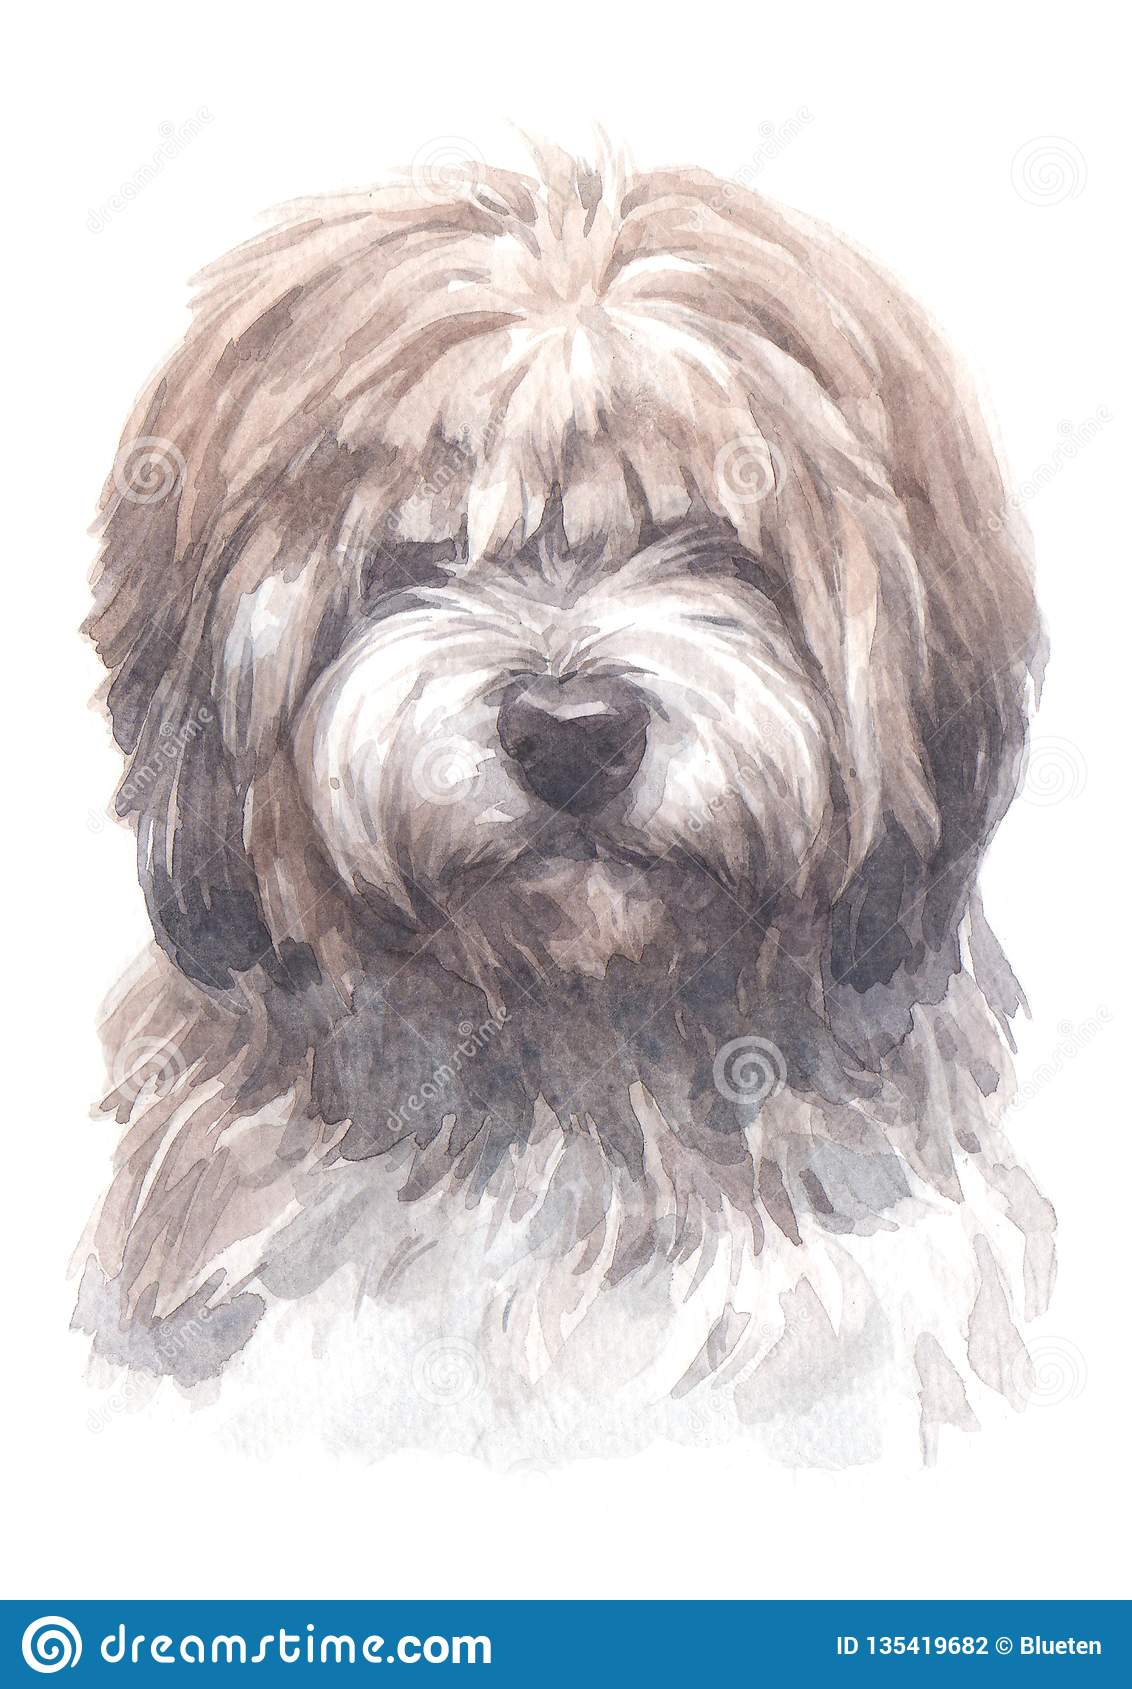 Shih Tzu Dogs Water Colour 017 Stock Photo Image Of Watercolour Puppy 135419682